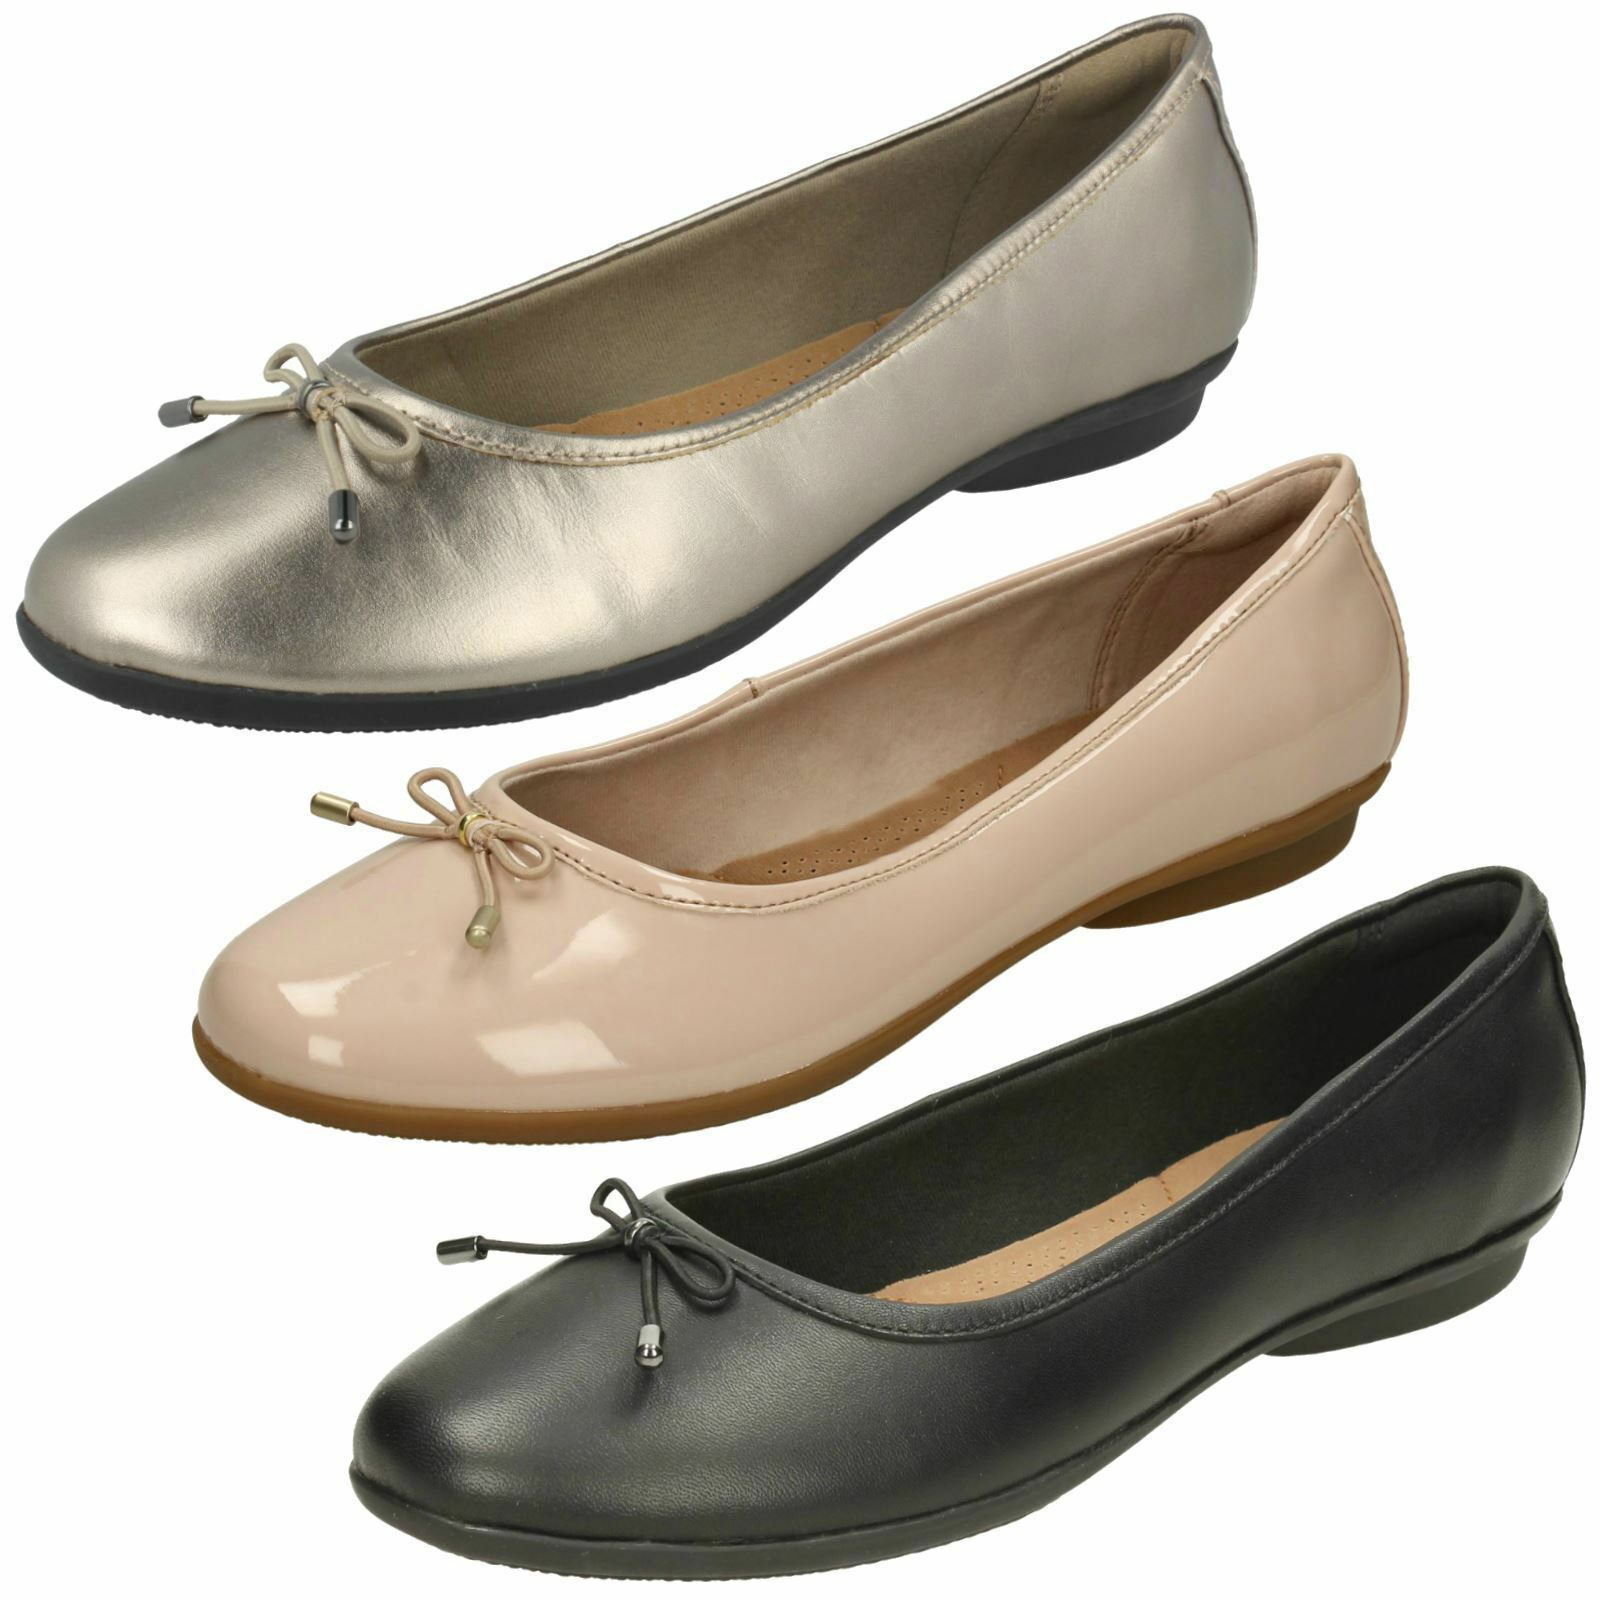 SALE CLARKS LADIES BALLET  STYLE   chaussures  GRACELIN bleu